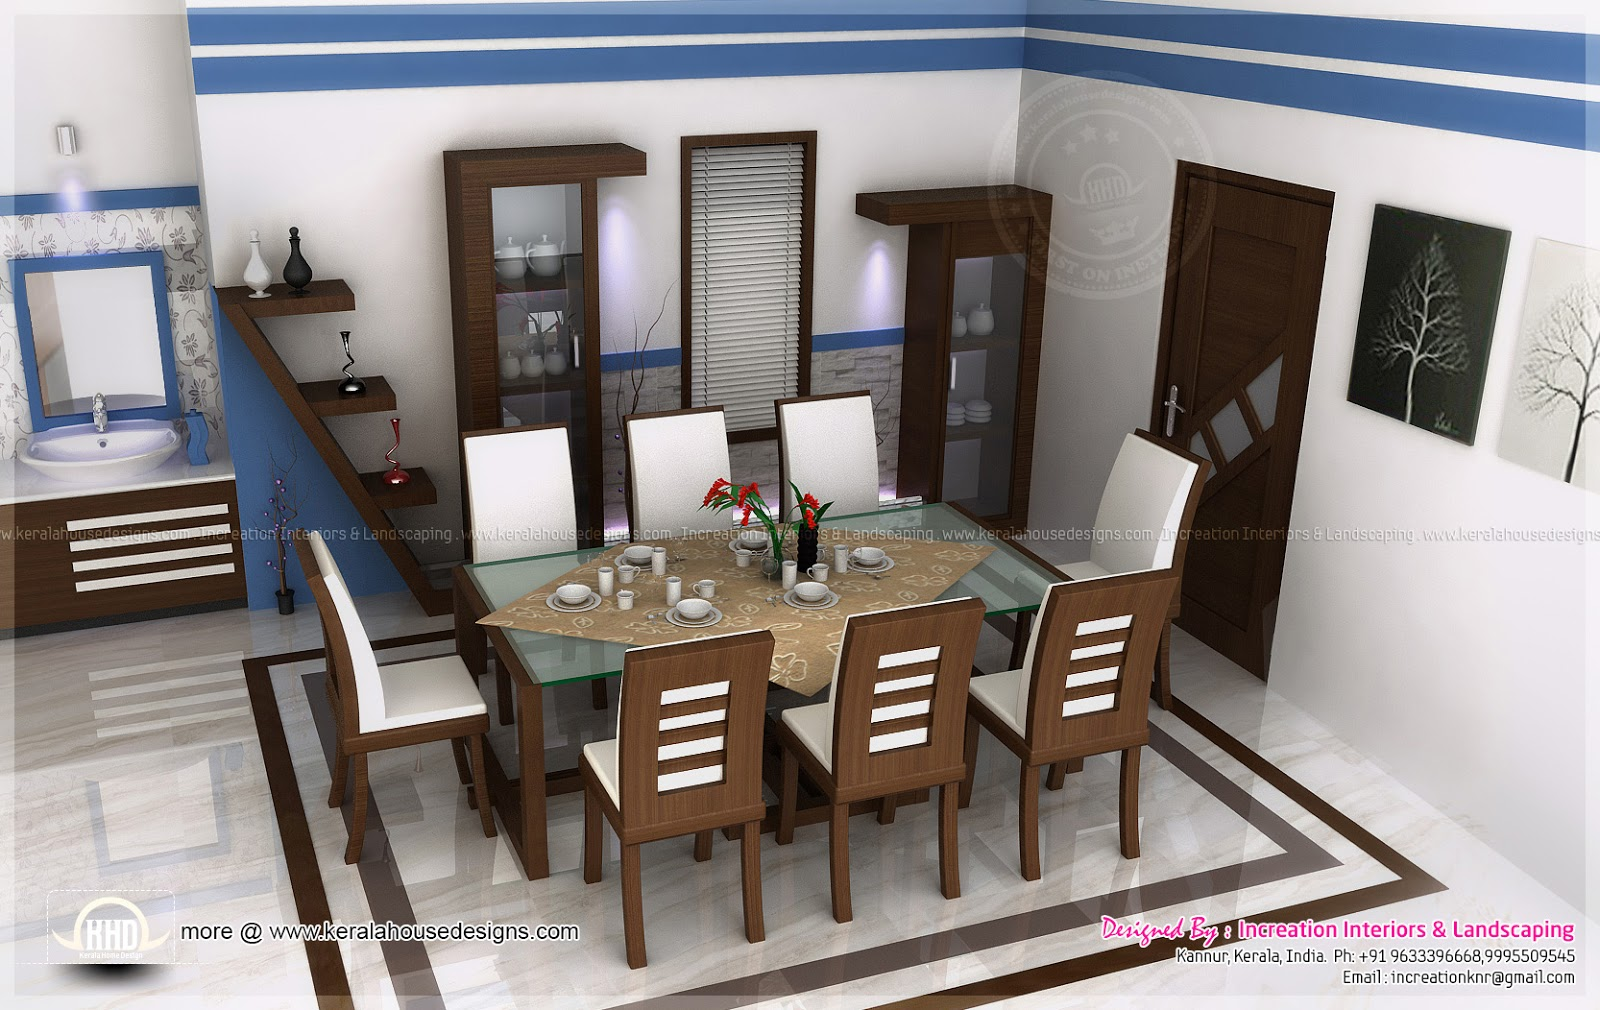 House interior ideas in 3d rendering kerala home design for Interior designs for homes pictures